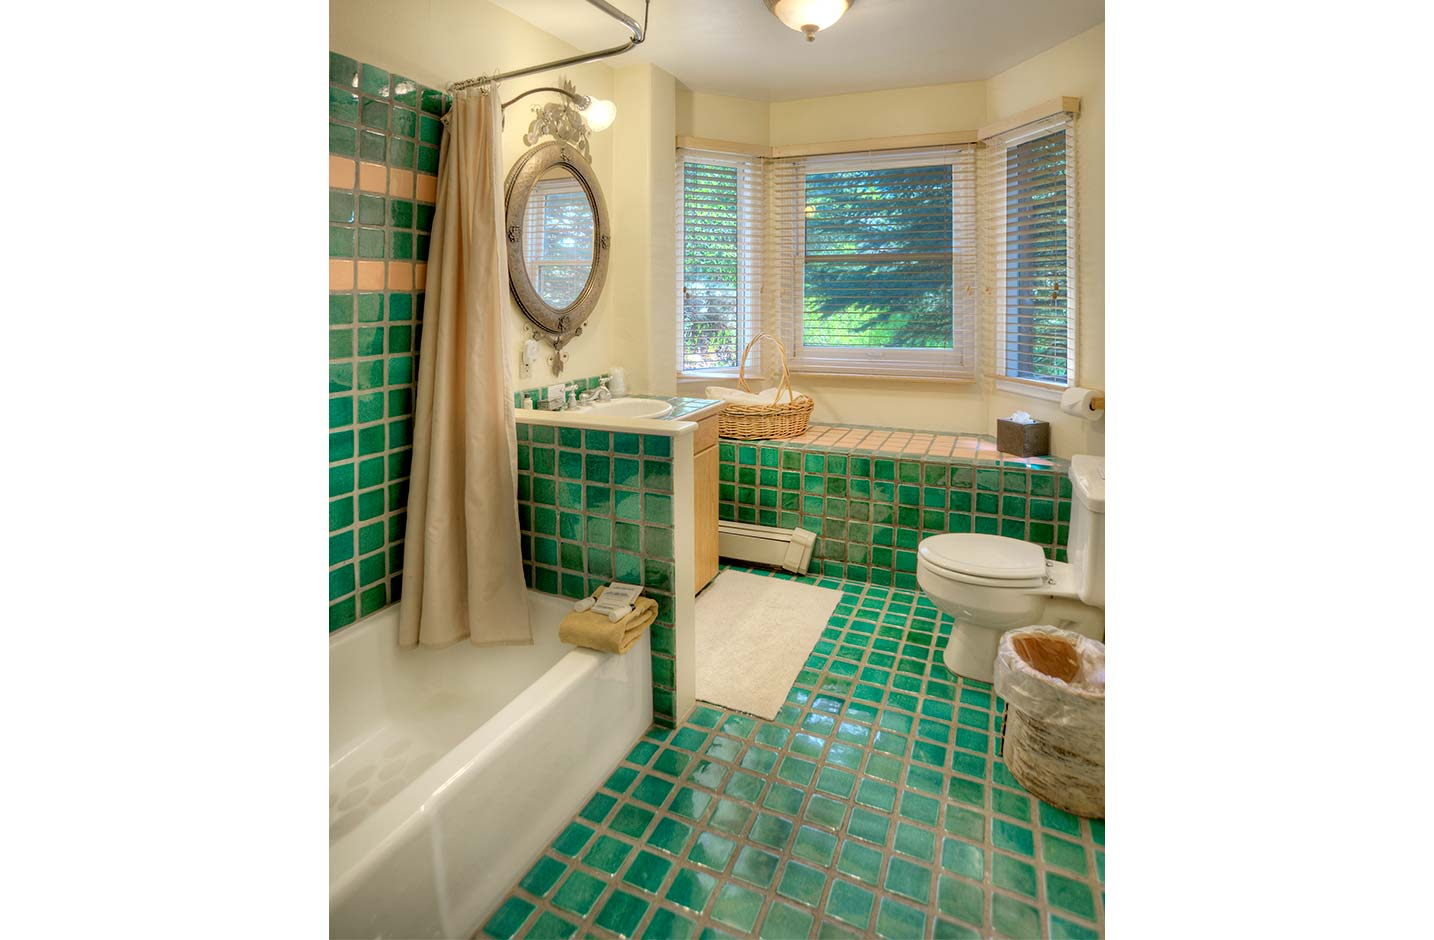 Teal tiled bathroom with bay windows and a shower